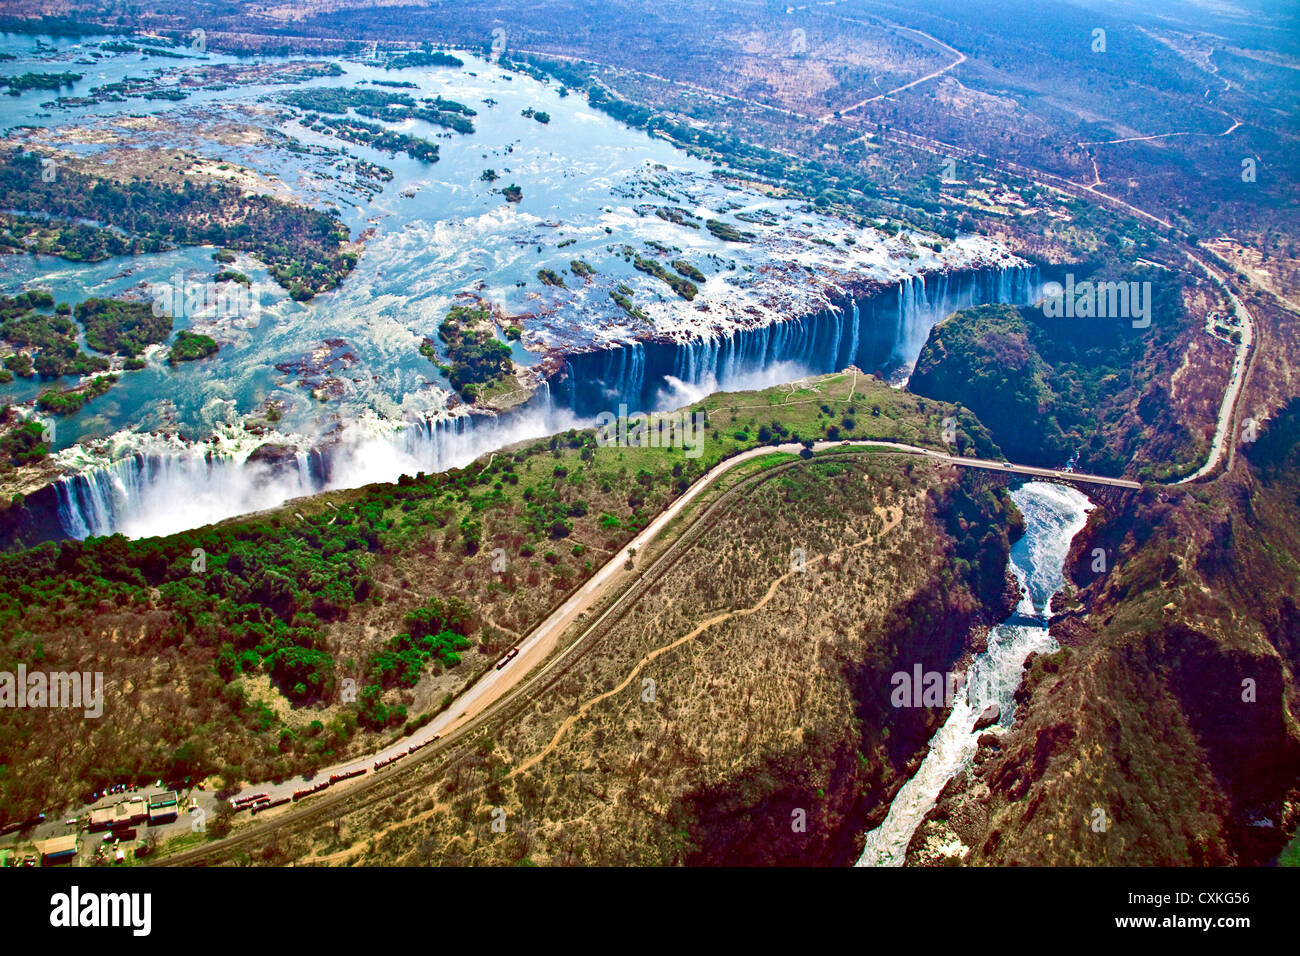 Aerial view of Victoria Falls, Waterfall, and the Zambesi River, Zimbabwe, Africa. On the Zambia-Zimbabwe Border - Stock Image